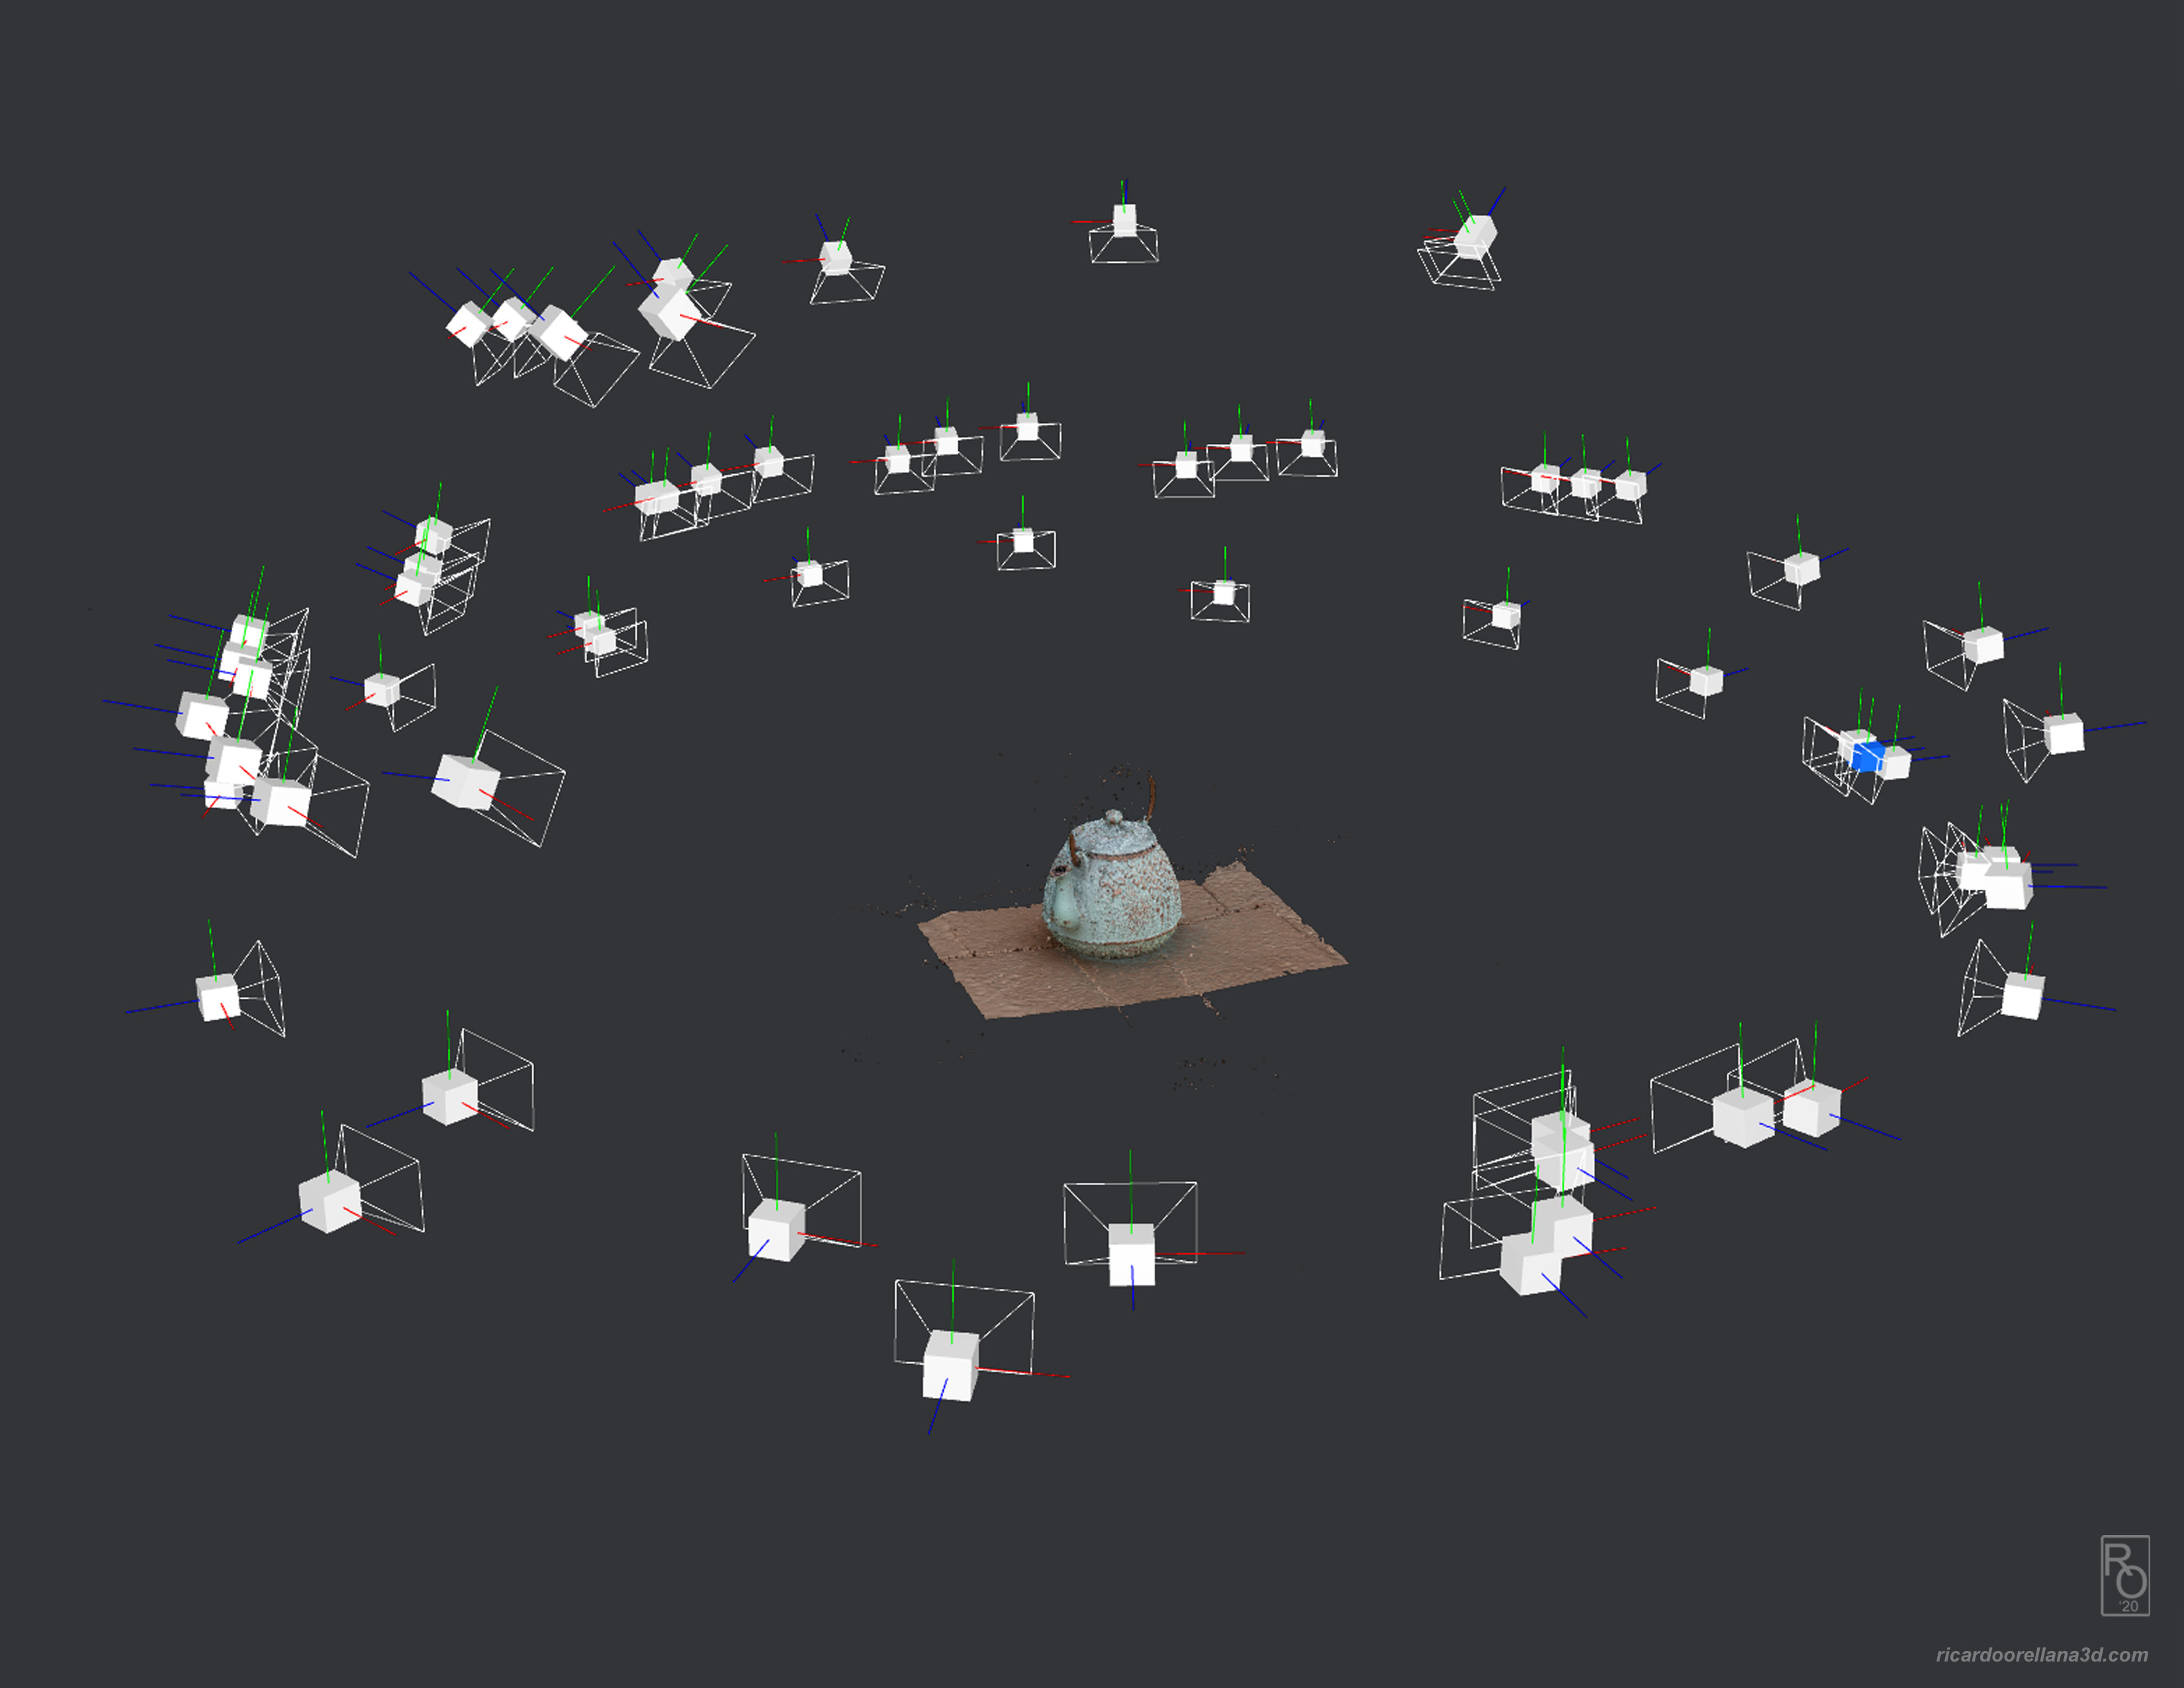 Screenshot from Meshroom showing the number of cameras used